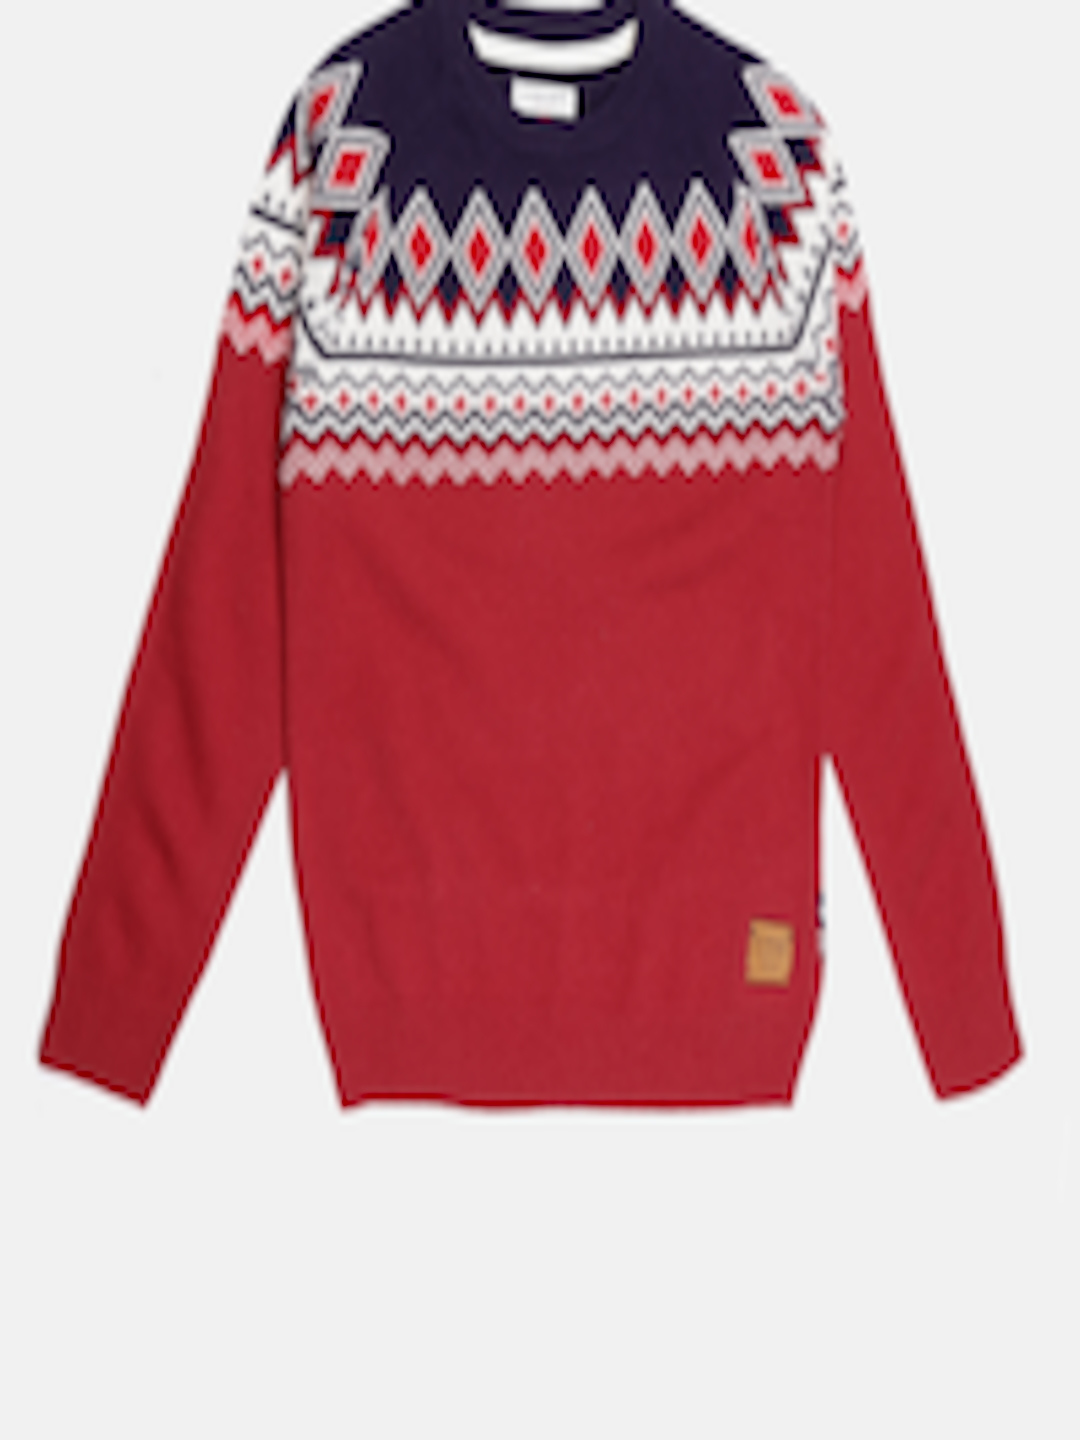 Buy U.S. Polo Assn. Kids Boys Red Self Design Sweater - Sweaters ...